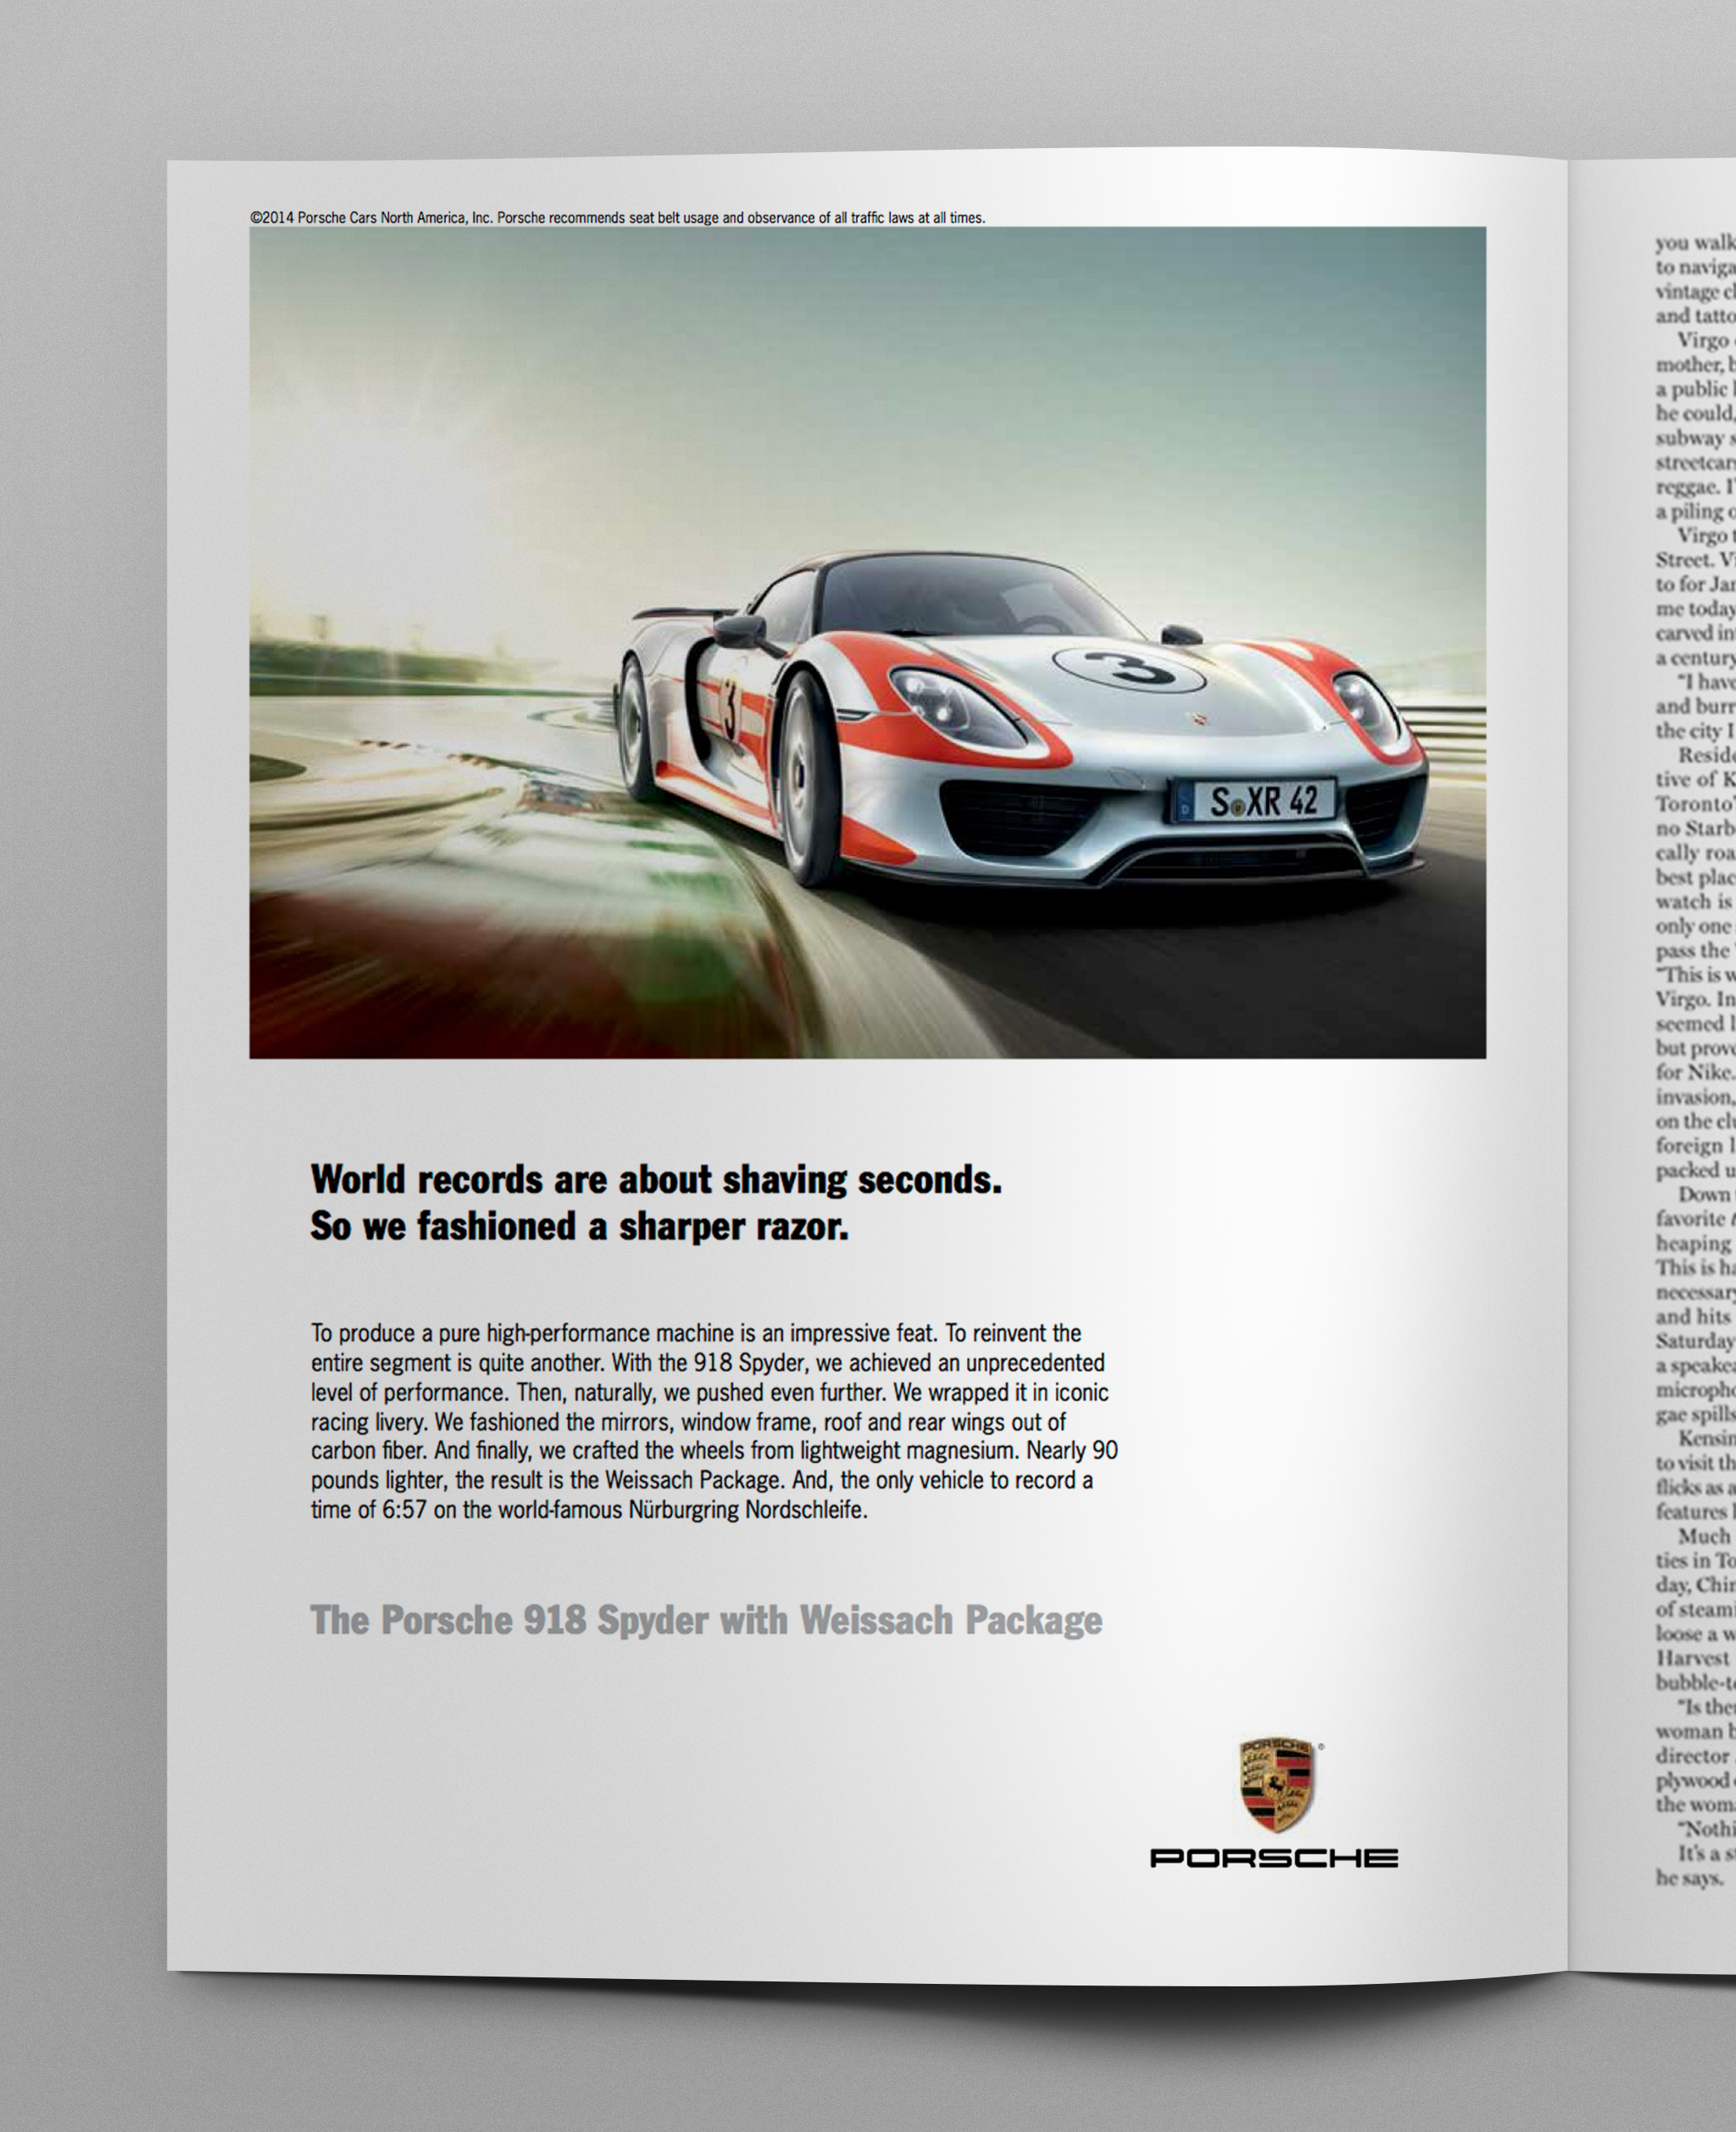 Headline:  World records are about shaving seconds. So we fashioned a sharper razor.   Body copy:   To produce a pure high-performance machine is an impressive feat. To reinvent the entire segment is quite another. With the 918 Spyder, we achieved an unprecedented level of performance. Then, naturally, we pushed even further. We wrapped it in iconic racing livery. We fashioned the mirrors, window frame, roof and rear wings out of carbon fiber. And finally, we crafted the wheels from lightweight magnesium. Nearly 90 pounds lighter, the result is the Weissach Package. And, the only vehicle to record a time of 6:57 on the world-famous Nürburgring Nordschleife.